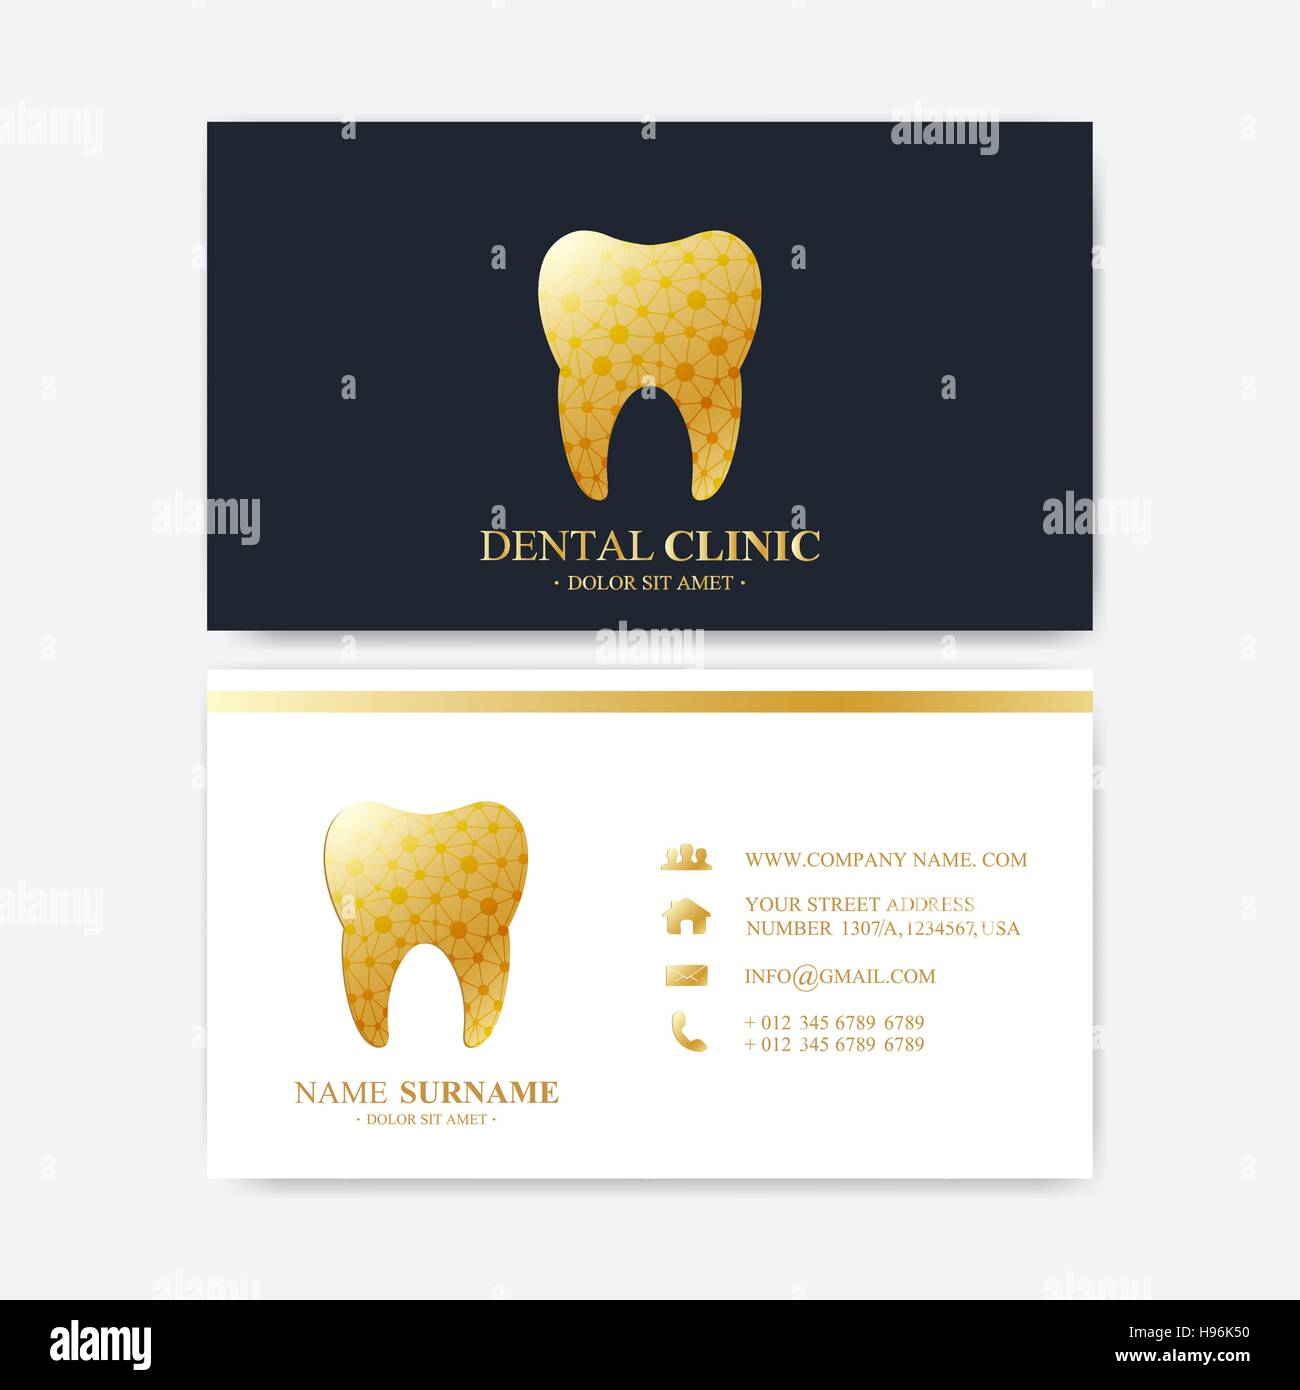 Modle DImpression Carte De Visite Premium Clinique Dentaire Avec Logo La Dent Bureau Dentiste Oral Care Les Implants Dentaires Or